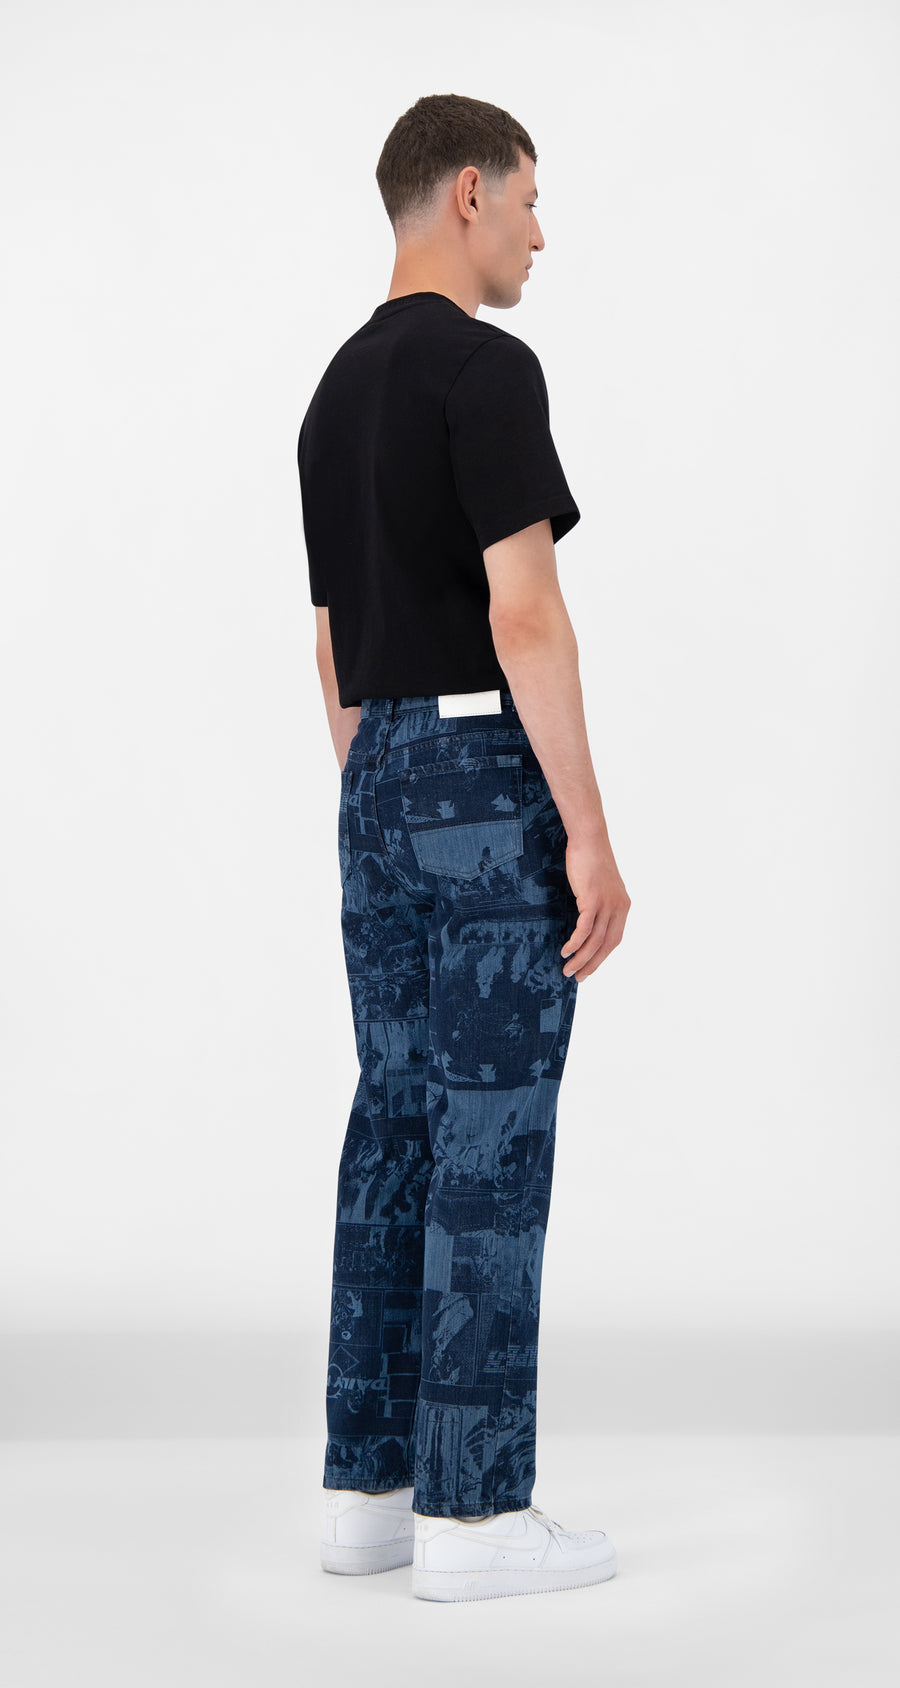 Daily Paper - Lazered Denim Jarzeb Pants - Men Rear